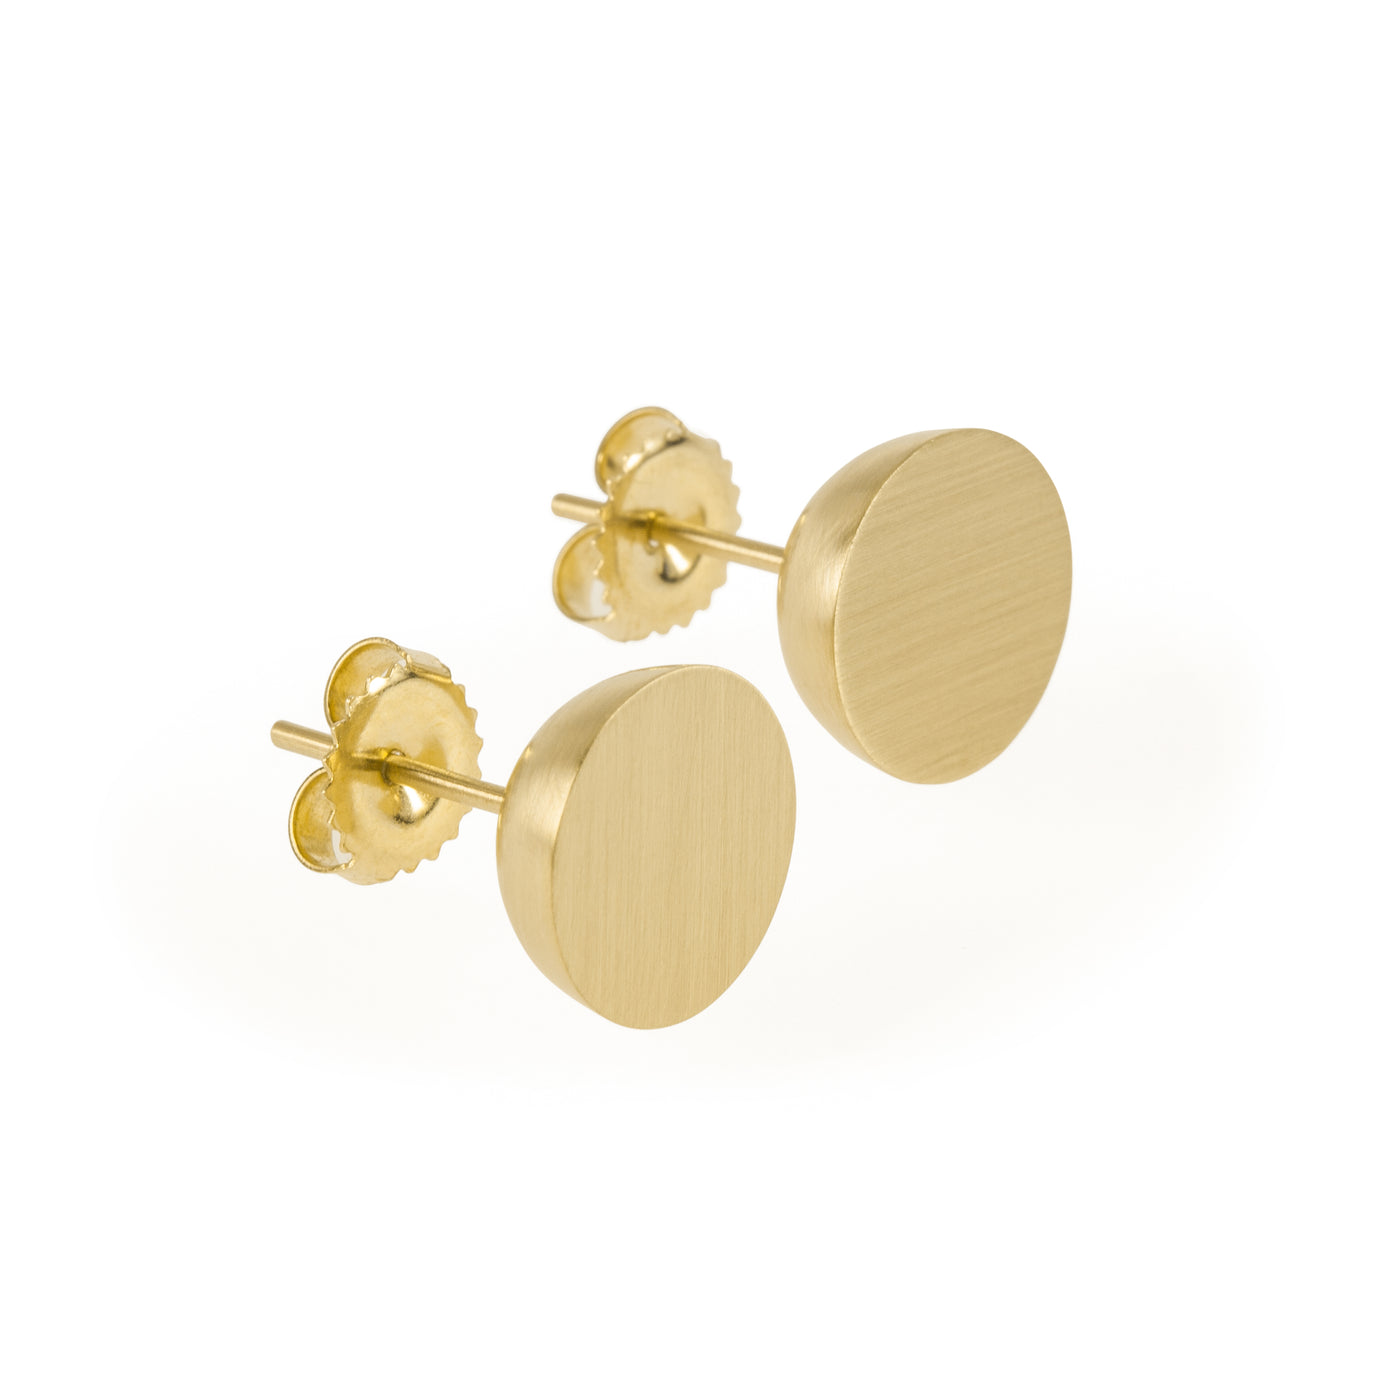 11mm Hemisphere Gold Studs